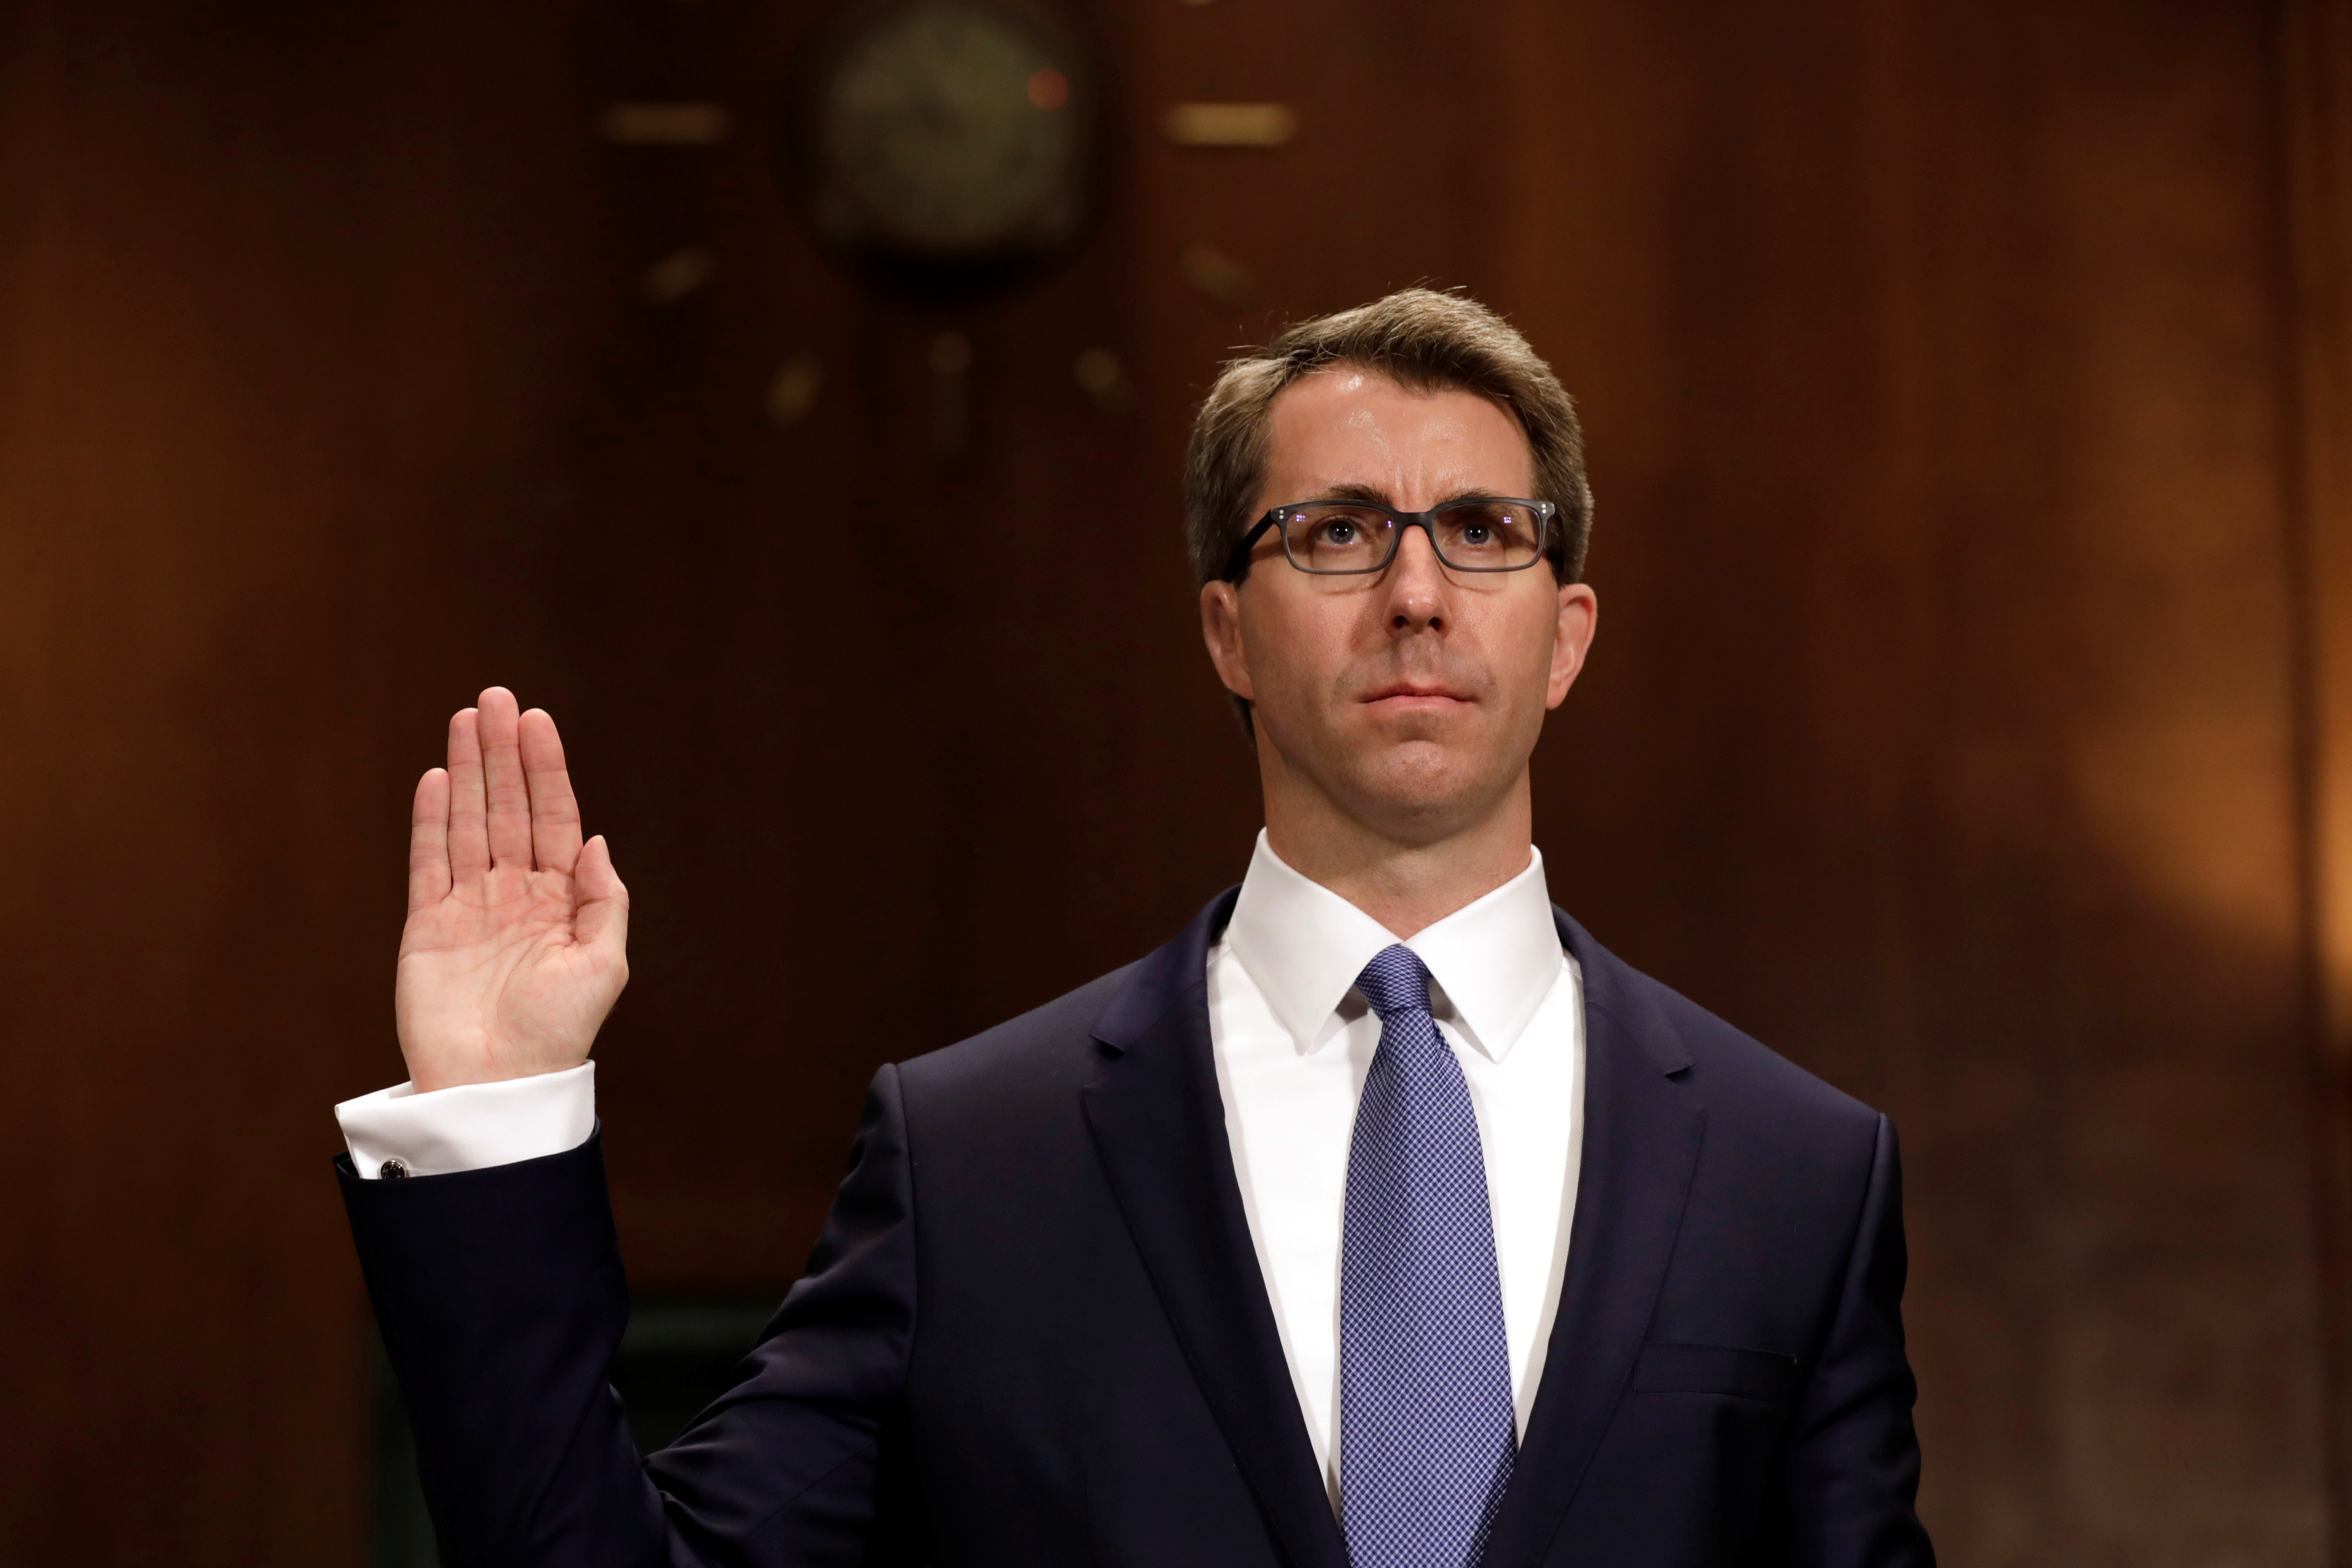 Ryan Bounds is sworn in before a Senate Judiciary Committee hearing on his nomination to be a U.S. Circuit Court judge for the Ninth Circuit, on Capitol Hill in Washington. REUTERS/Yuri Gripas